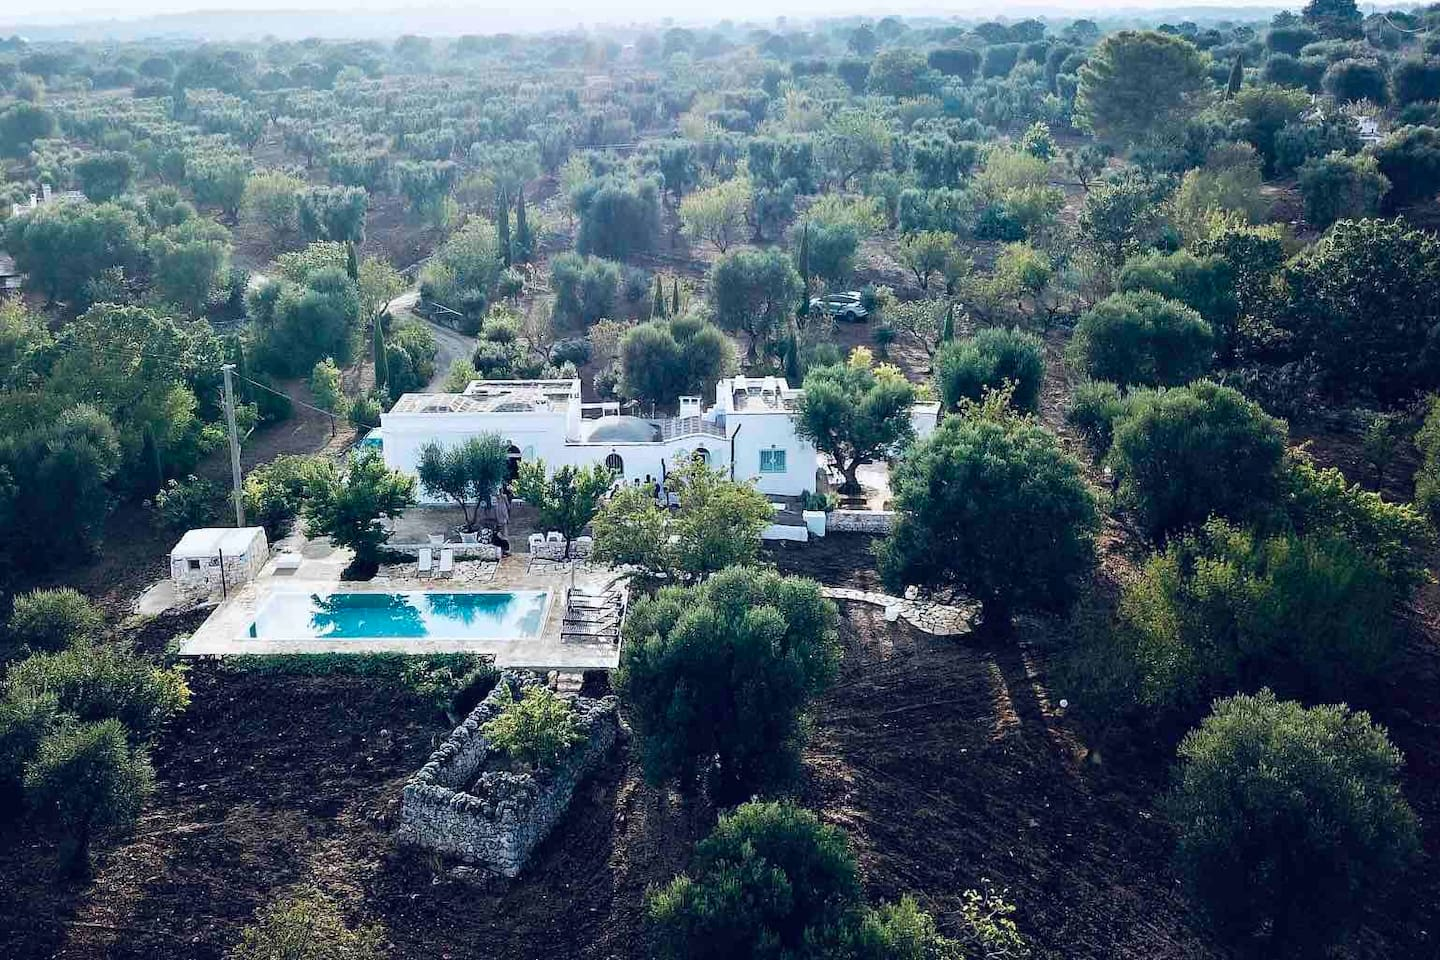 Our house is in the middle of olive trees just outside the beautiful town on Ceglie. Great place to relax with friends and family. Hang by the pool or cook a great meal in the outside kitchen. Very private, yet close to restaurants and Ceglie town.